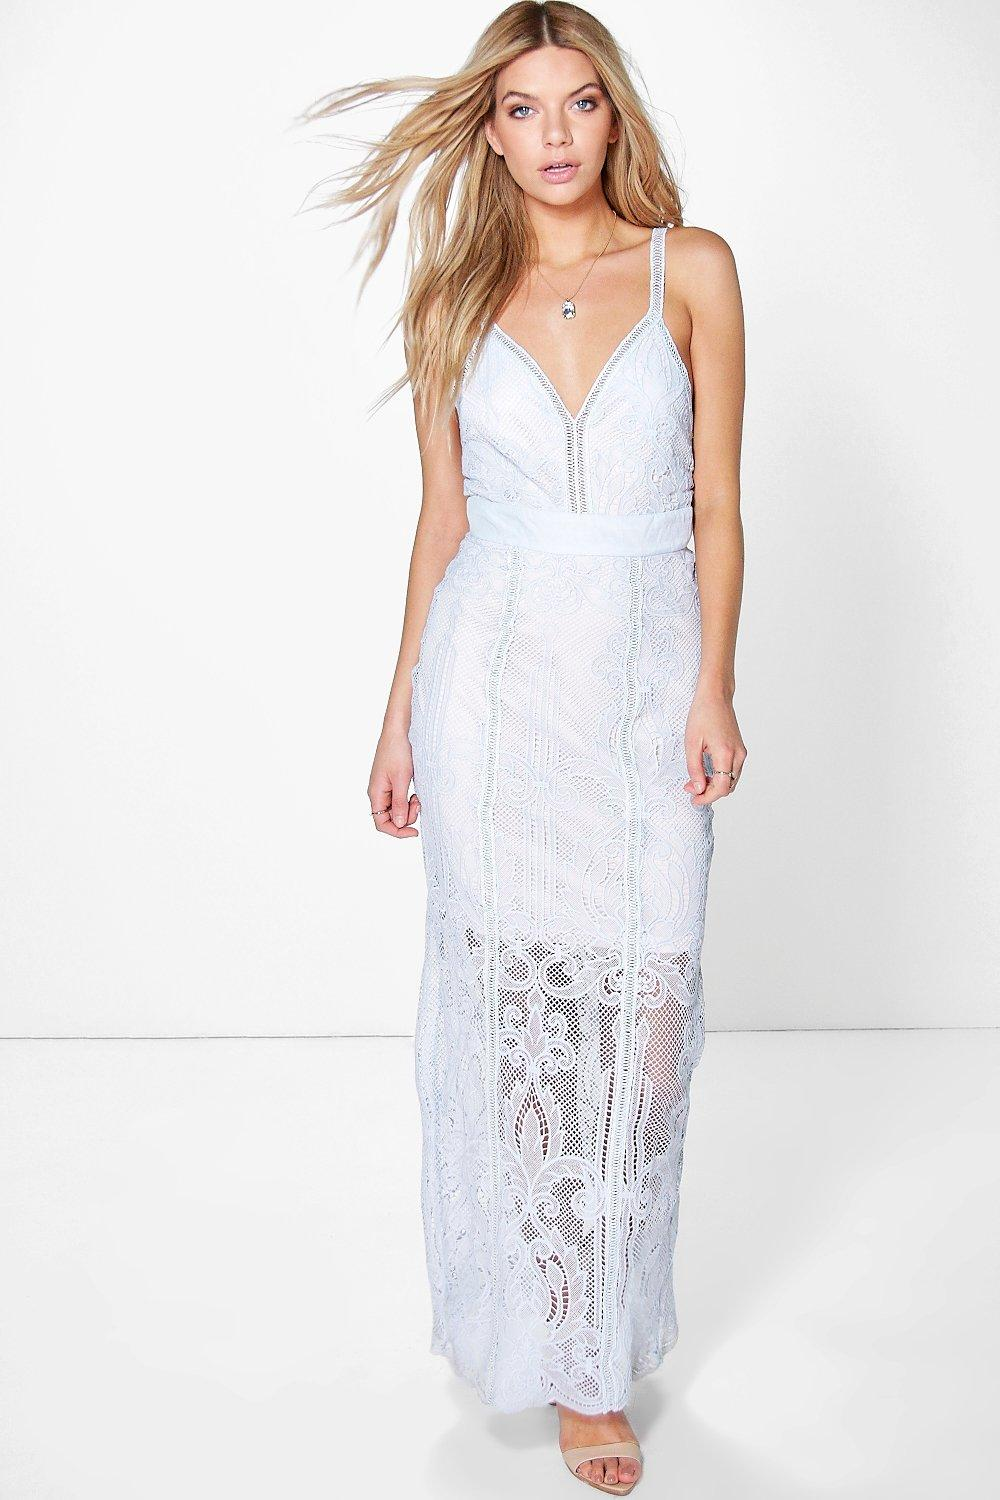 White dress with sheer overlay